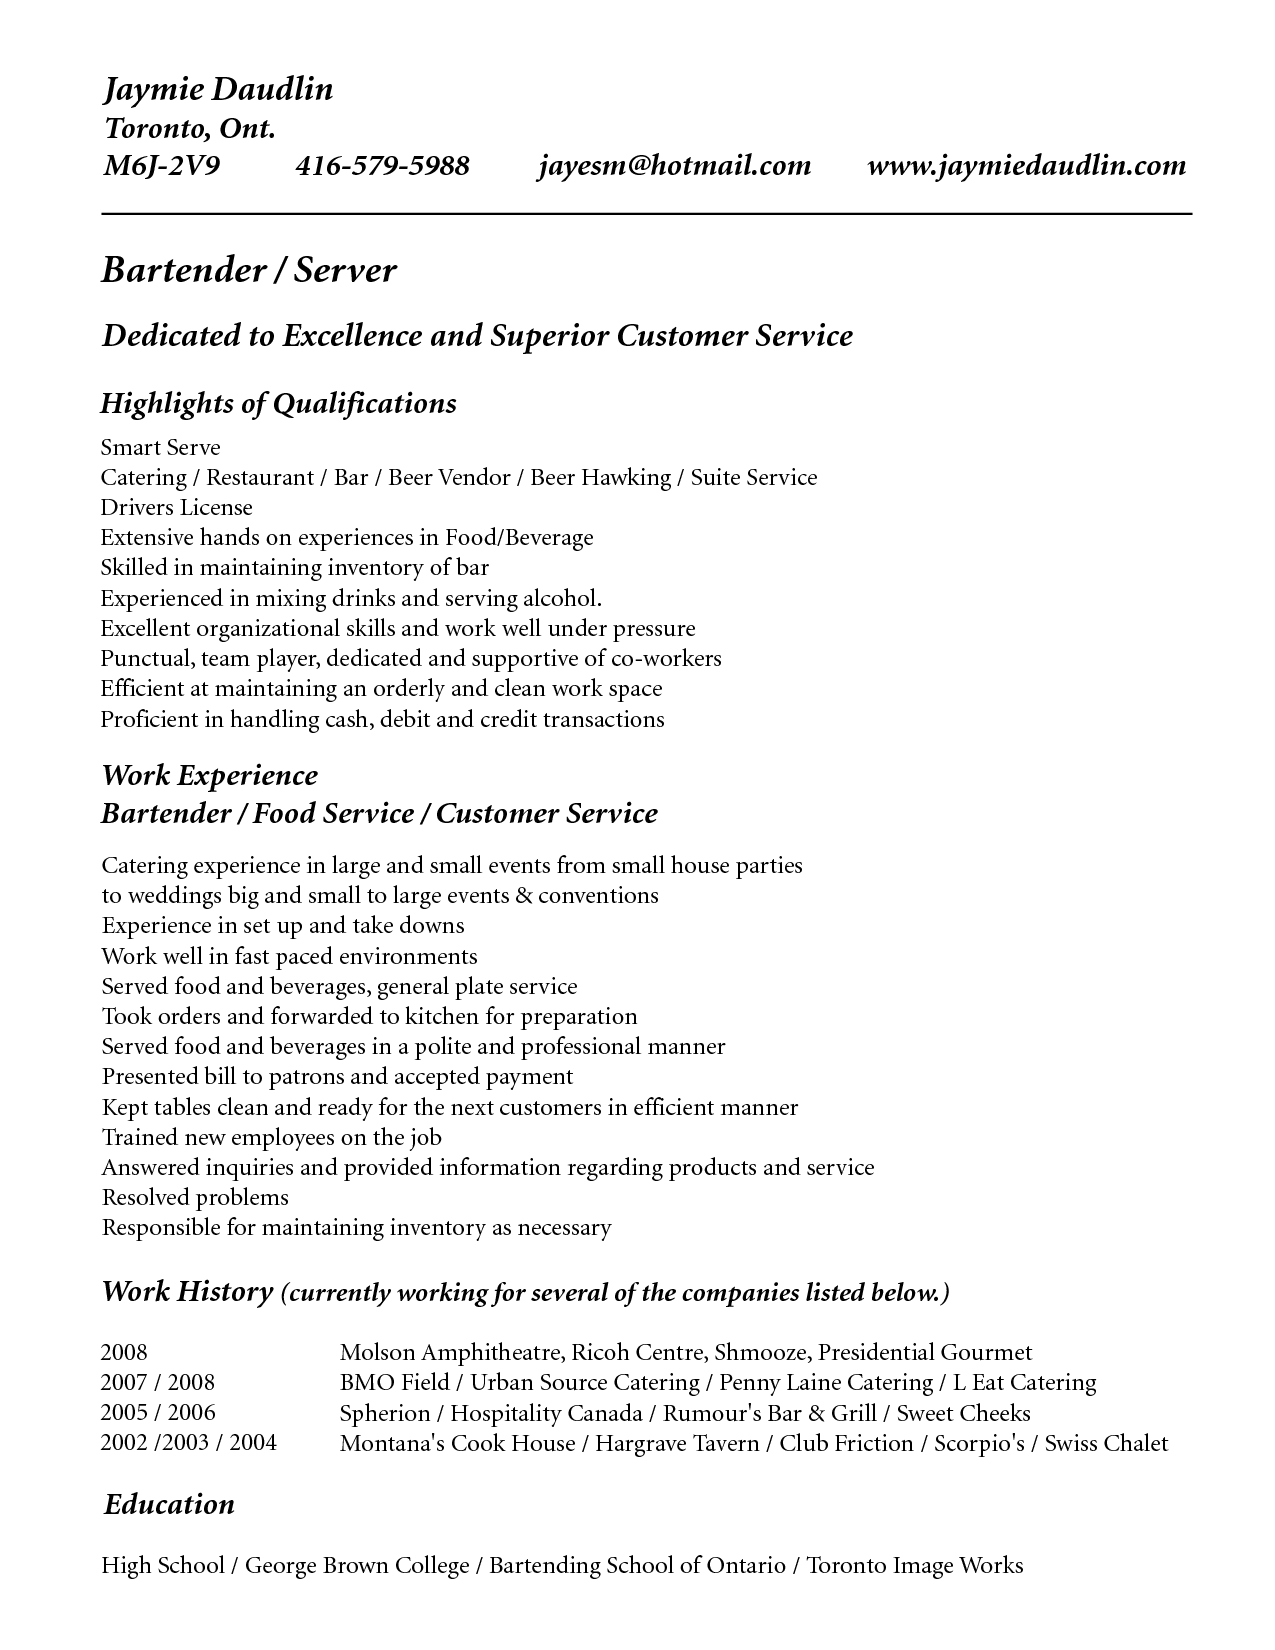 bartender resume sample bartender resume sample from salon resume ...